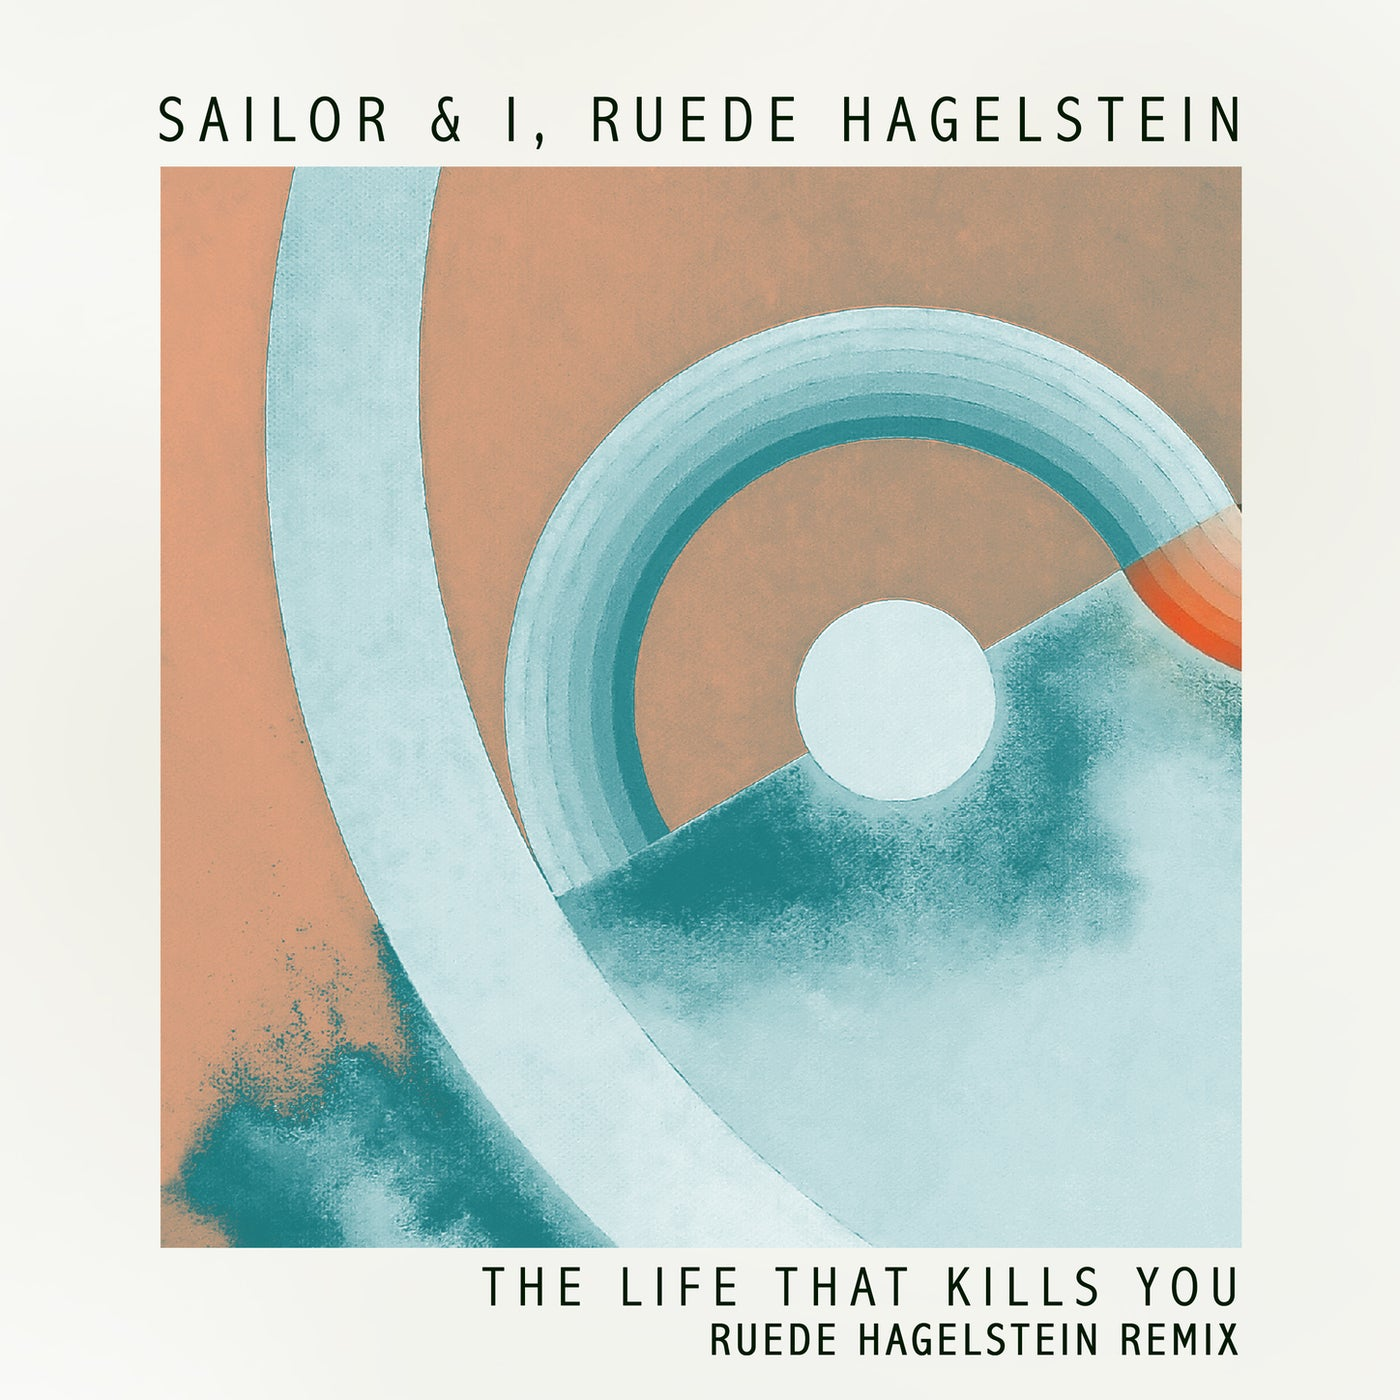 Download The Life That Kills You (Ruede Hagelstein Extended Remix) on Electrobuzz